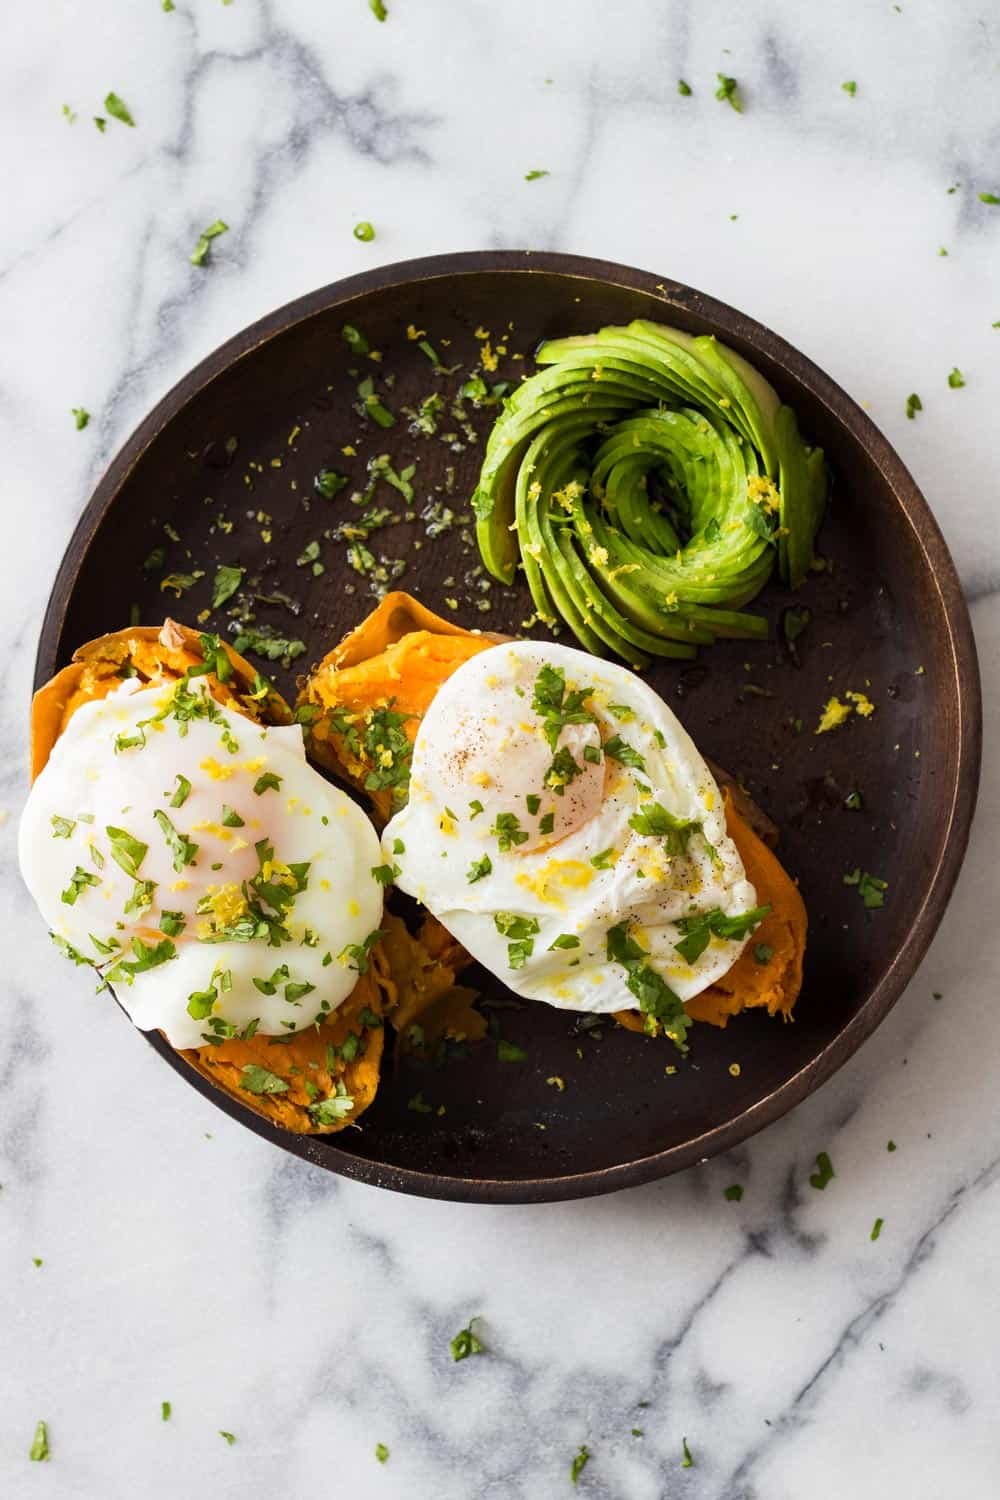 Two instant pot sweet potatoes with a poached egg on top and sliced avocado on the side, sprinkled with herbs, served on a brown plate.